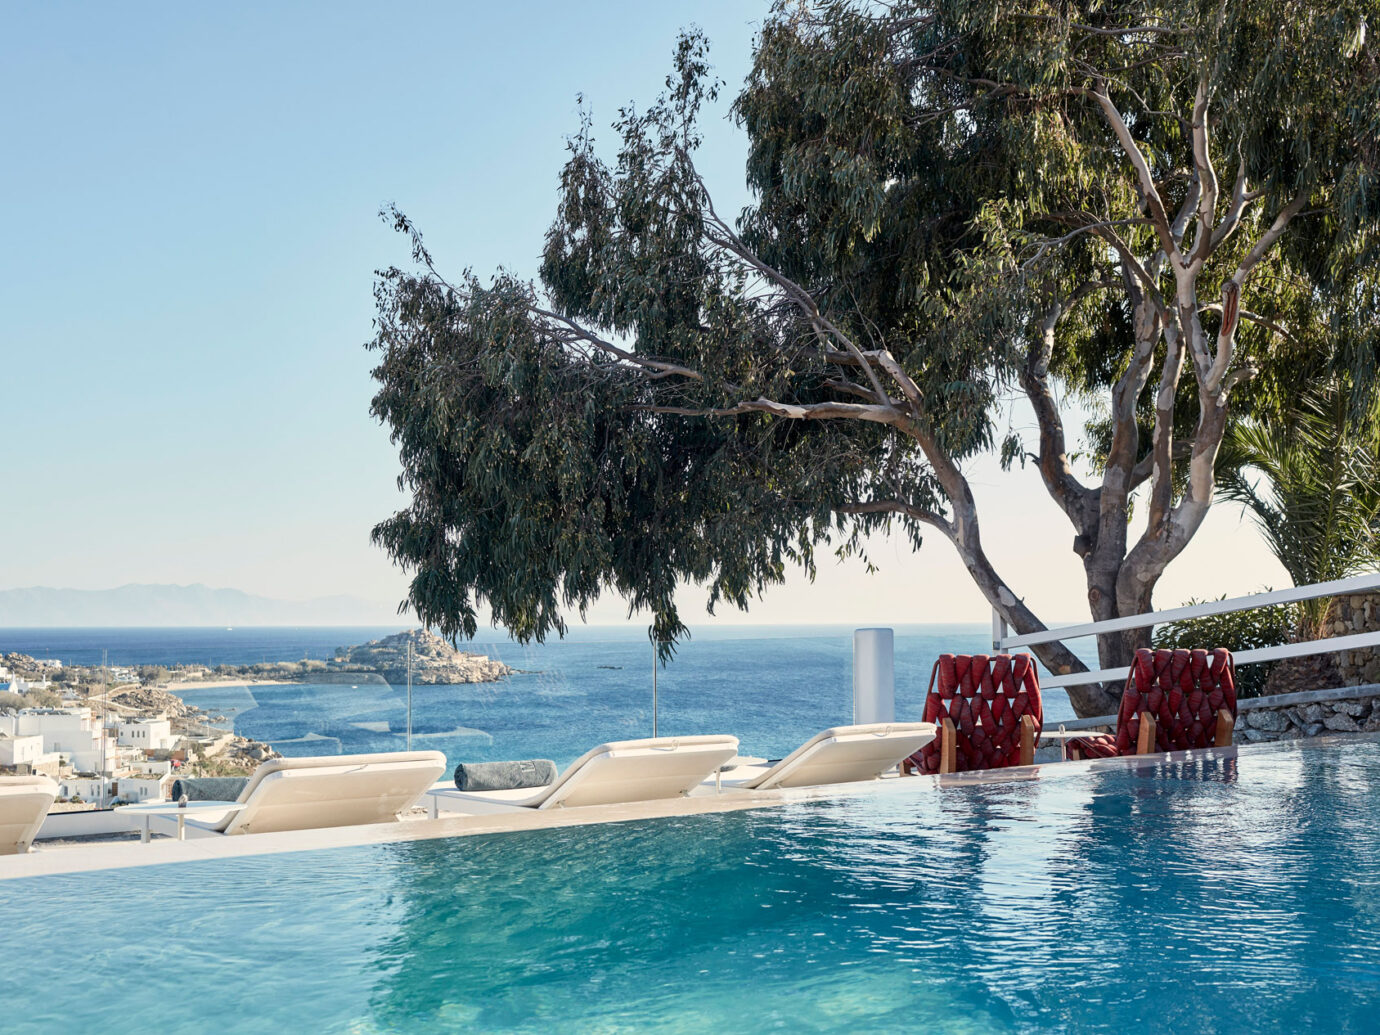 pool and ocean view at the Myconian Ambassador Hotel, Greece